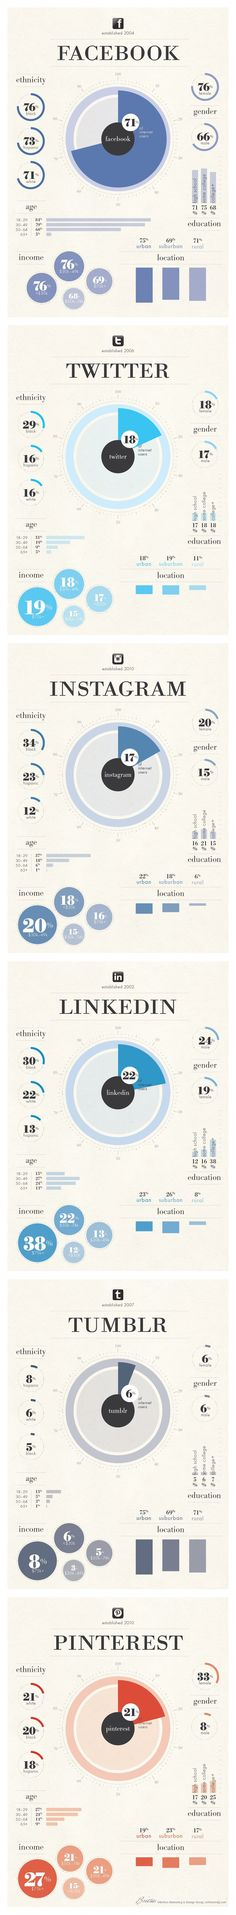 #SocialMedia 2014: User Demographics For Facebook, Twitter, Instagram, LinkedIn, Tumblr and #Pinterest - #infographic #marketing